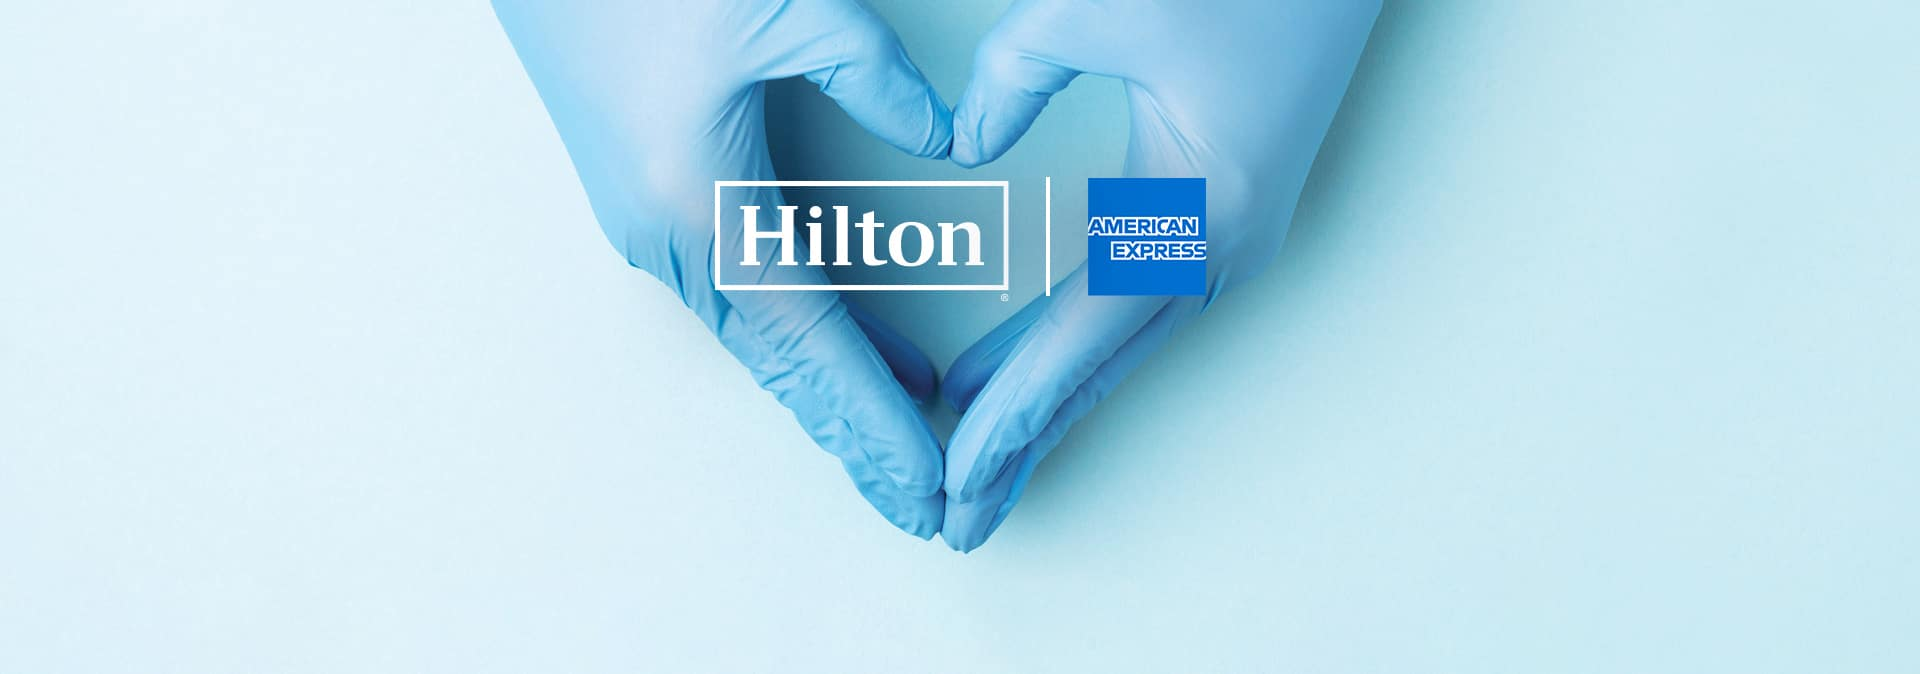 Hilton & Amex Free Rooms for Frontline Medical Staff Through the End of May 2020